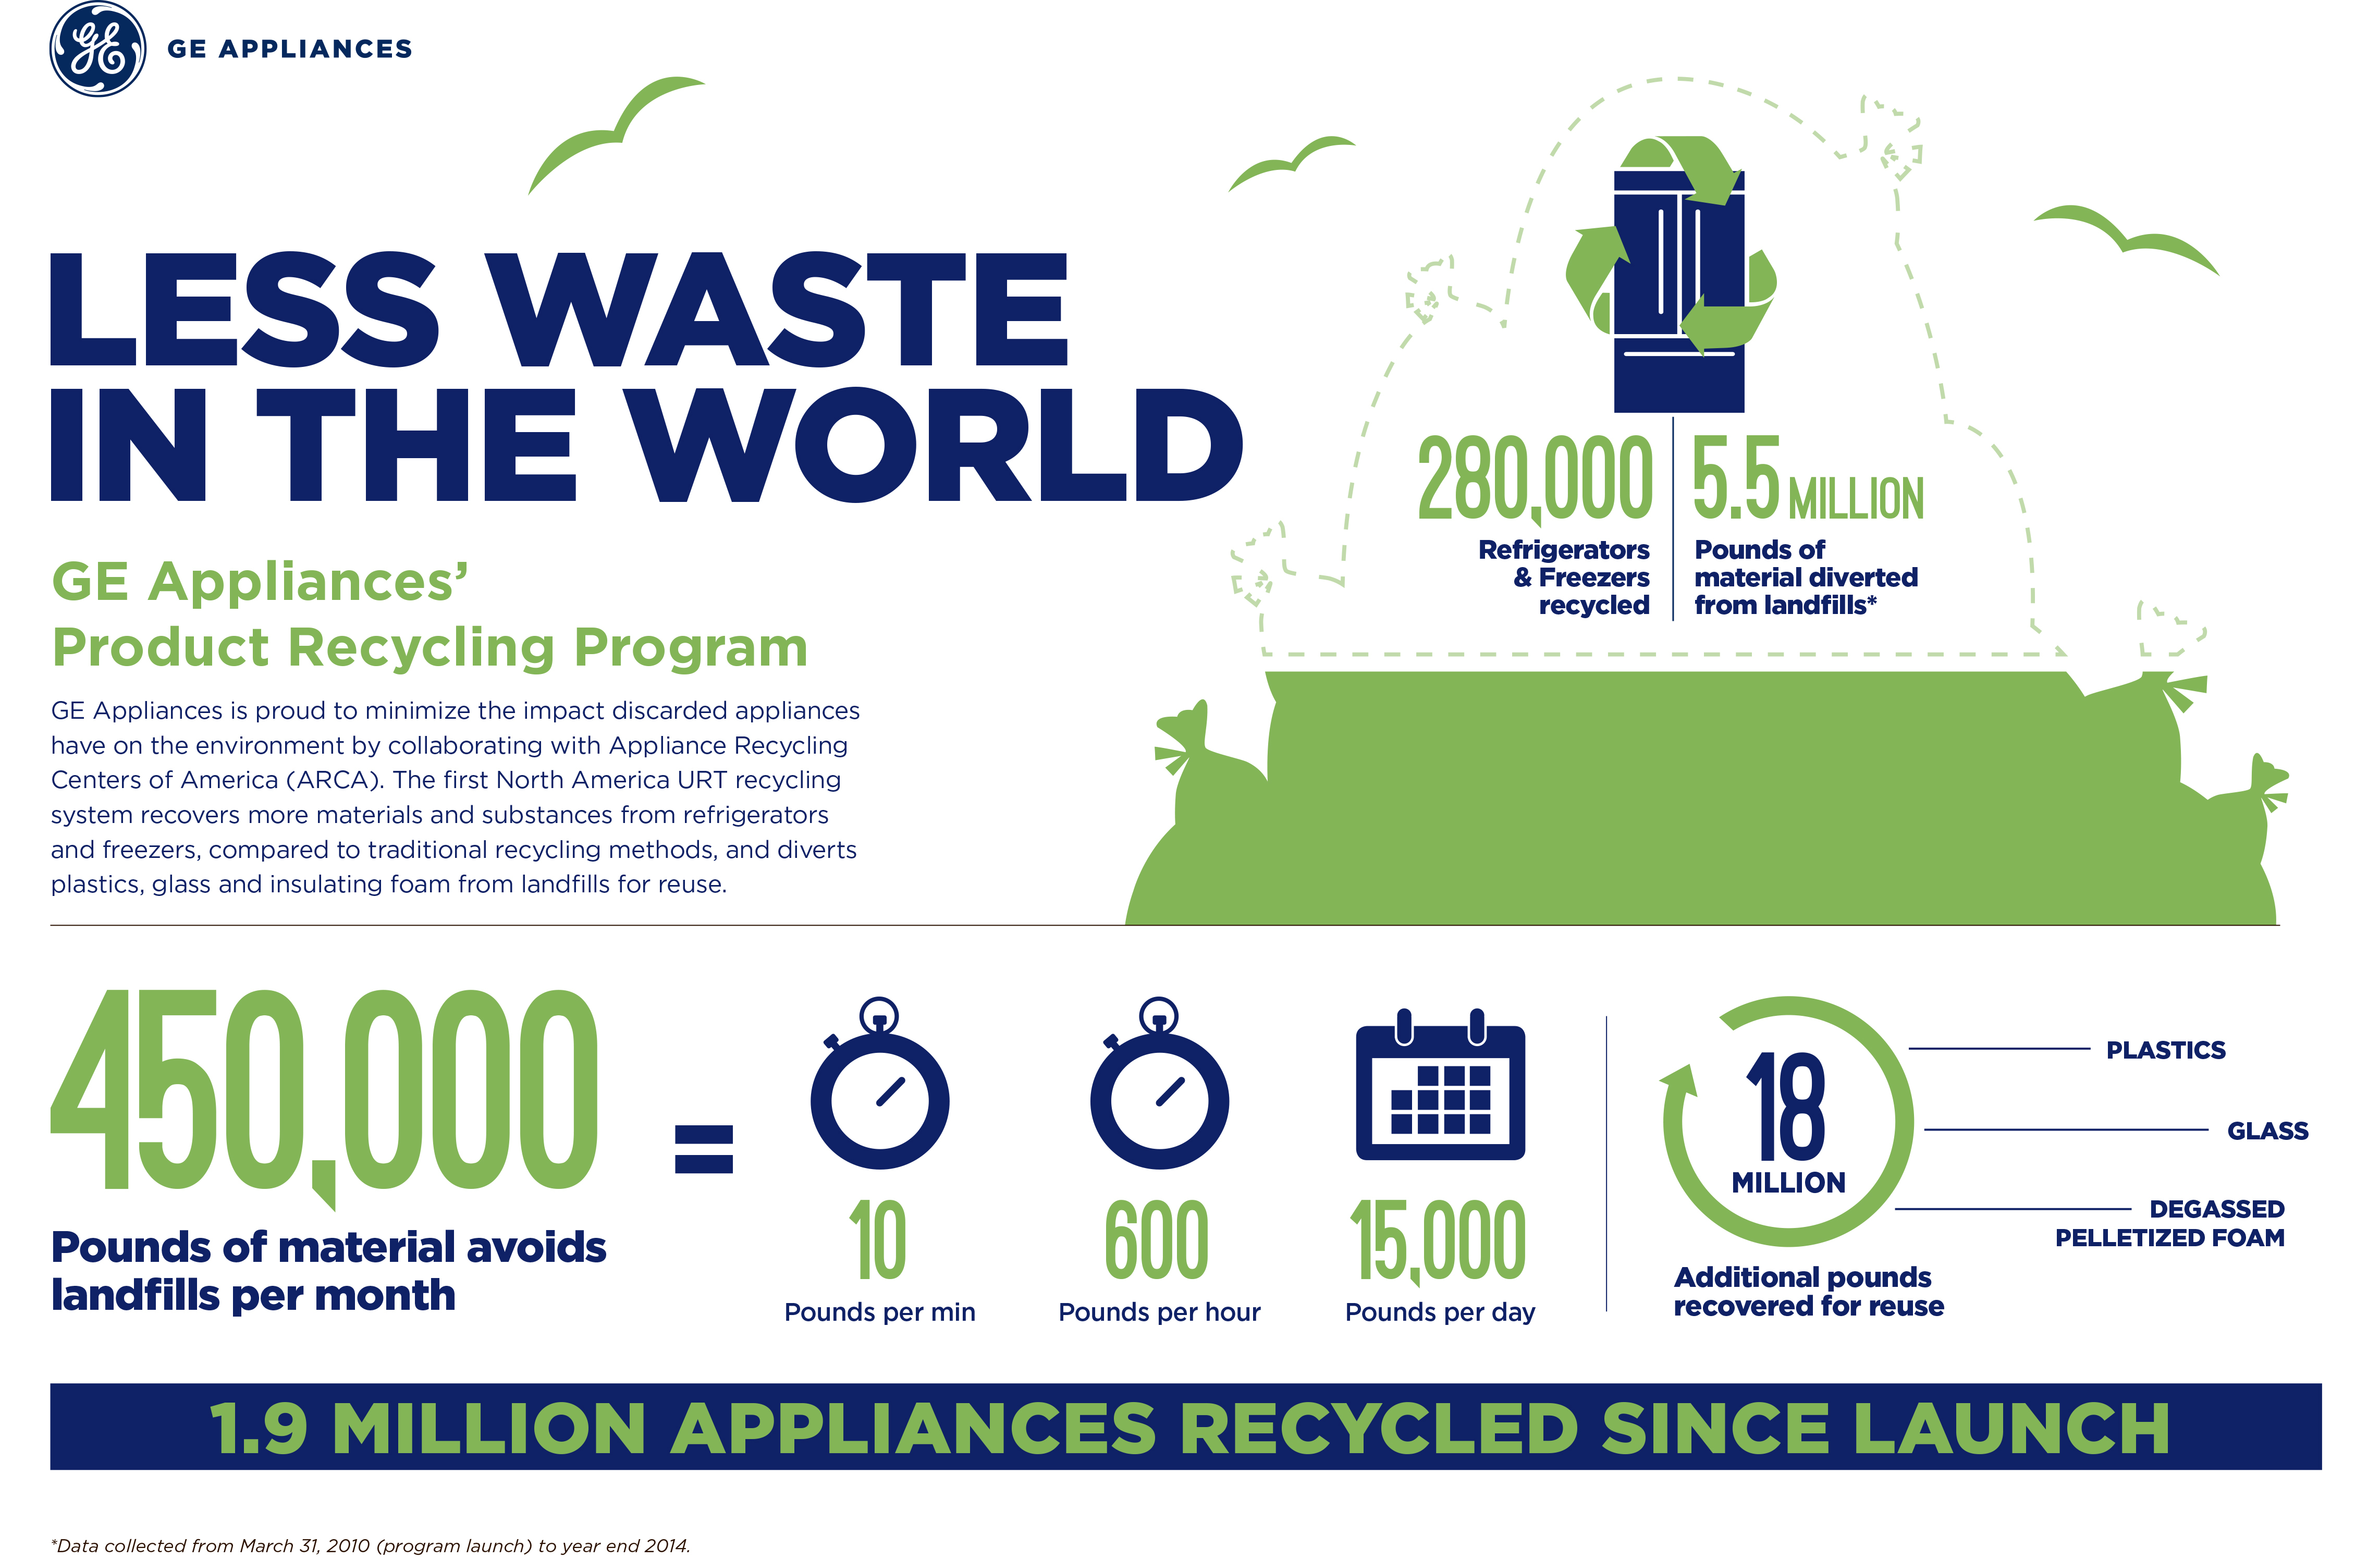 Private Retailer Spichers Appliance opts to recycle responsibly